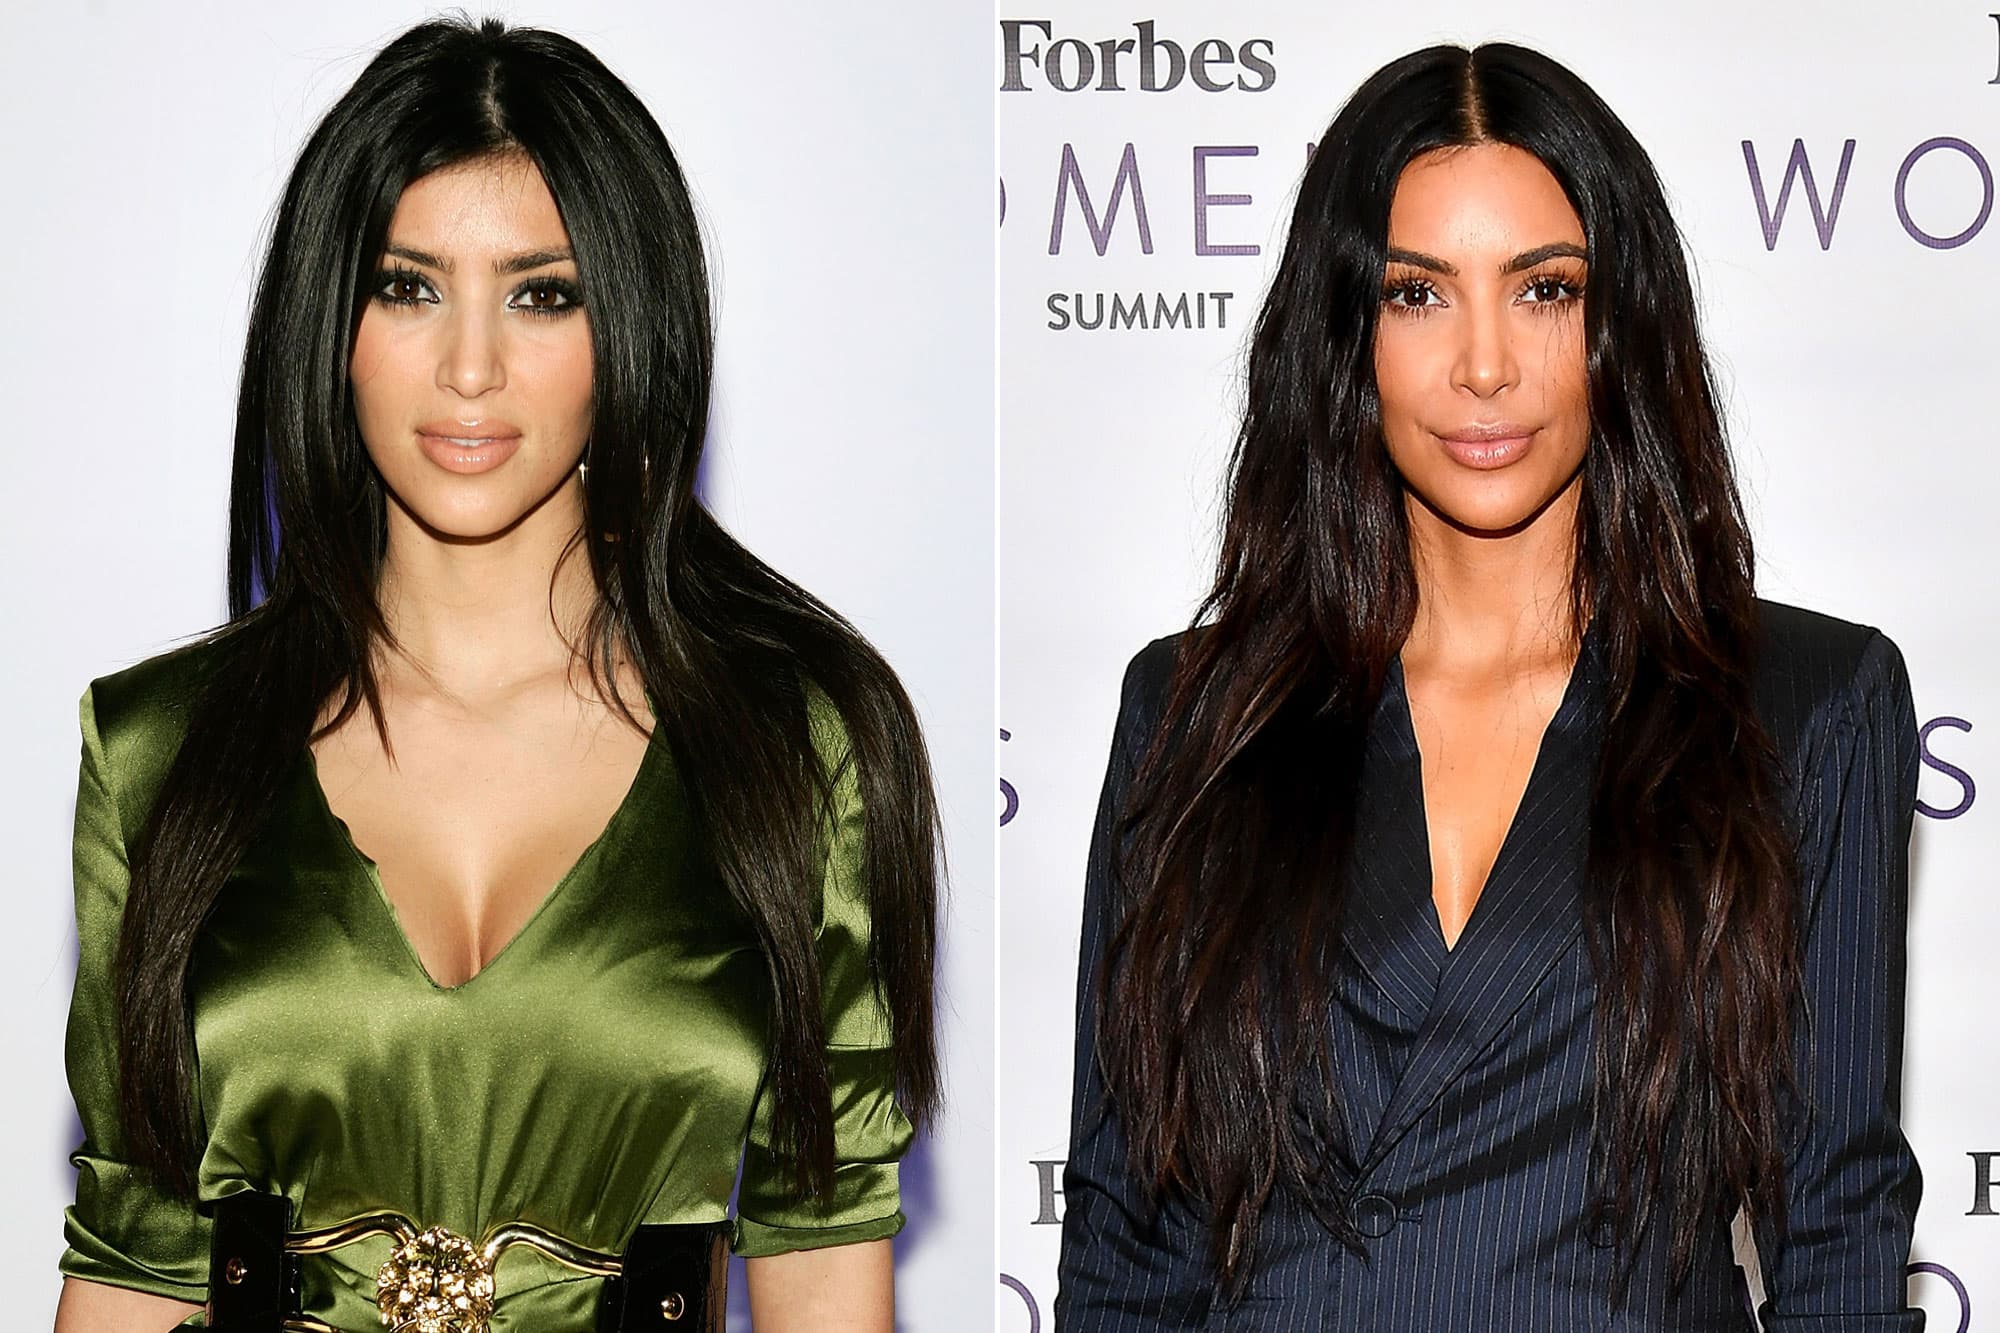 Kardashian Family Before And After Plastic Surgery 1